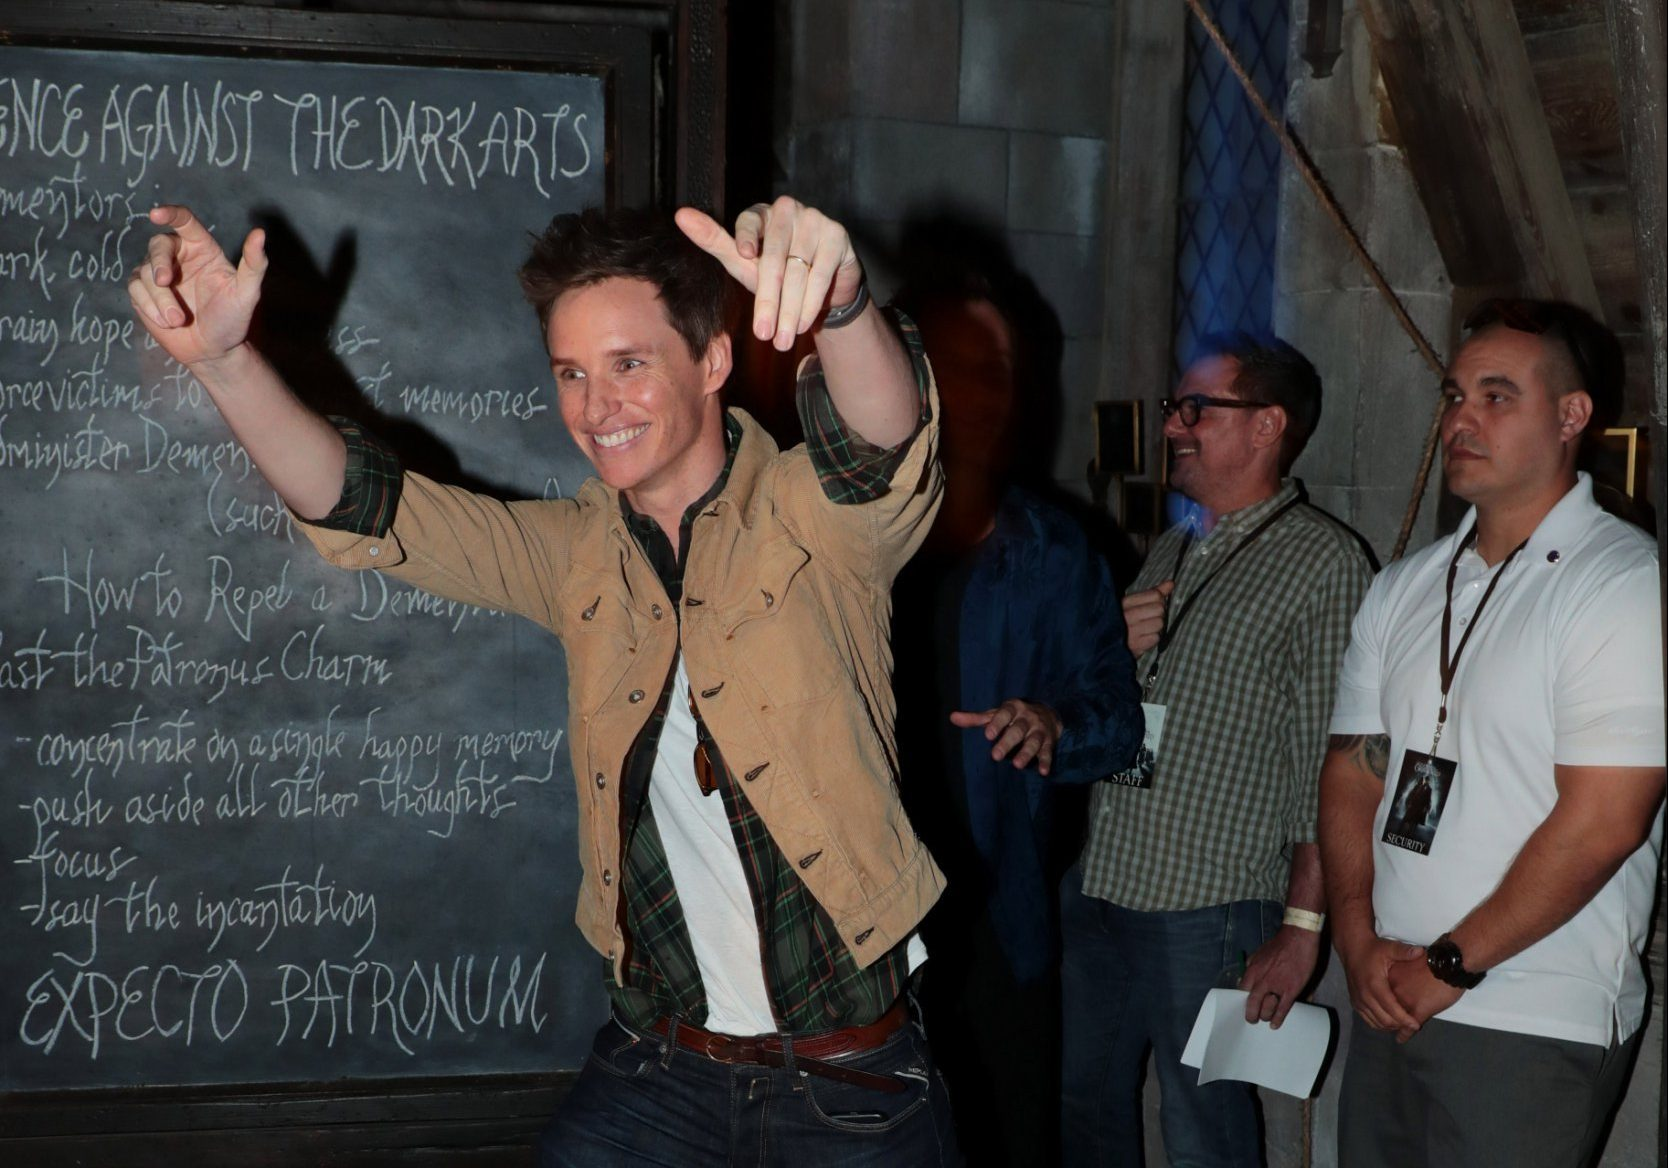 Eddie Redmayne can't stop smiling as he meets fans at Fantastic Beasts event